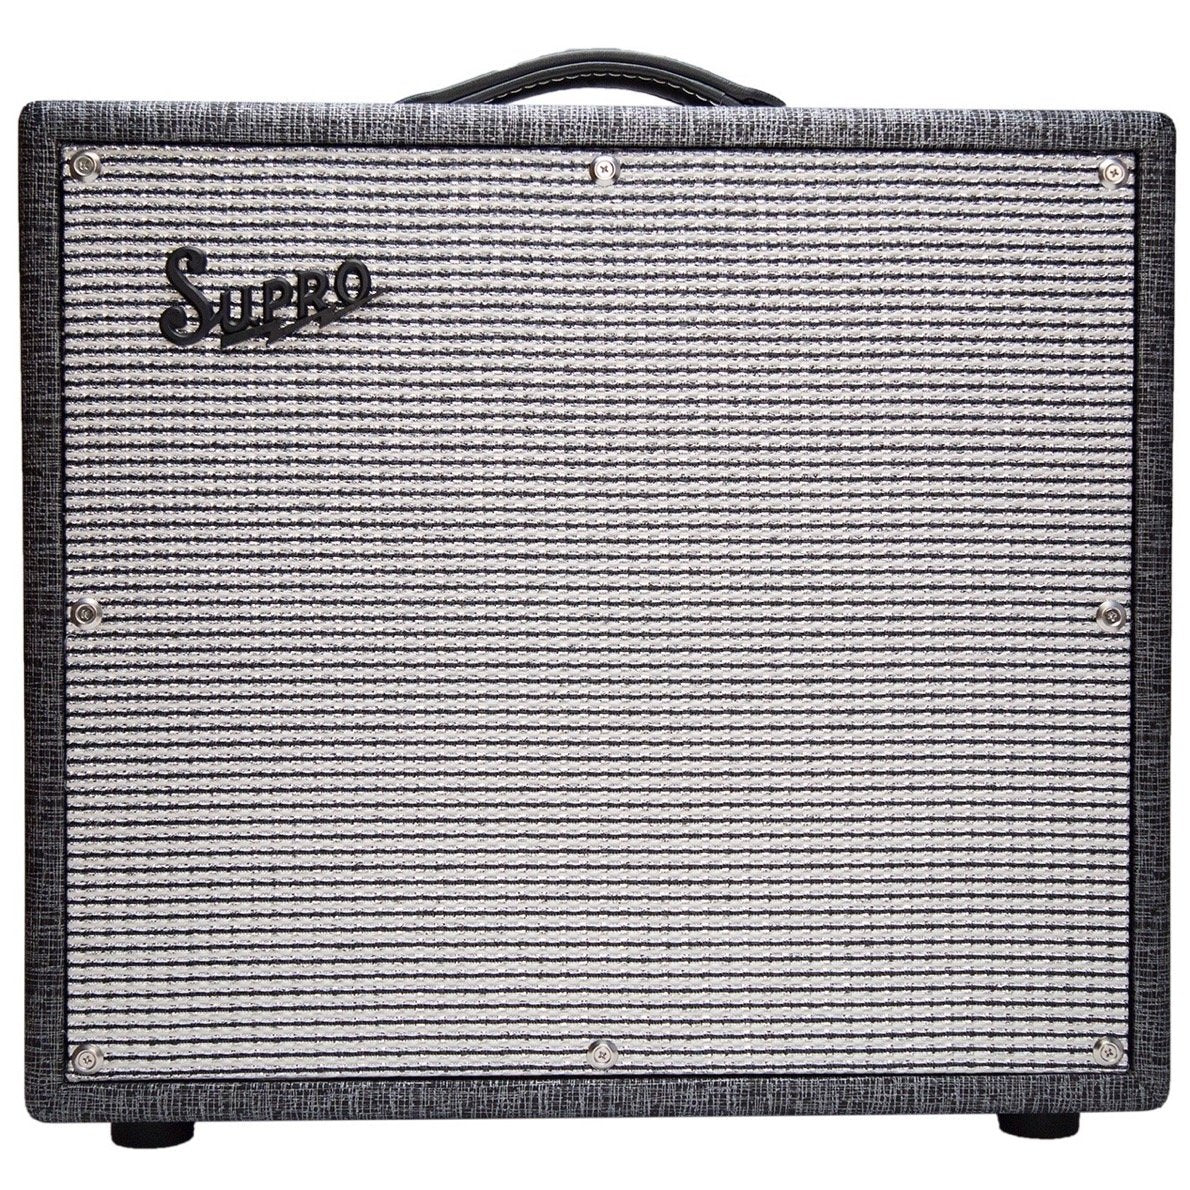 Supro 1695T Black Magick Guitar Combo Amplifier (1x12 Inch, 25 Watts)